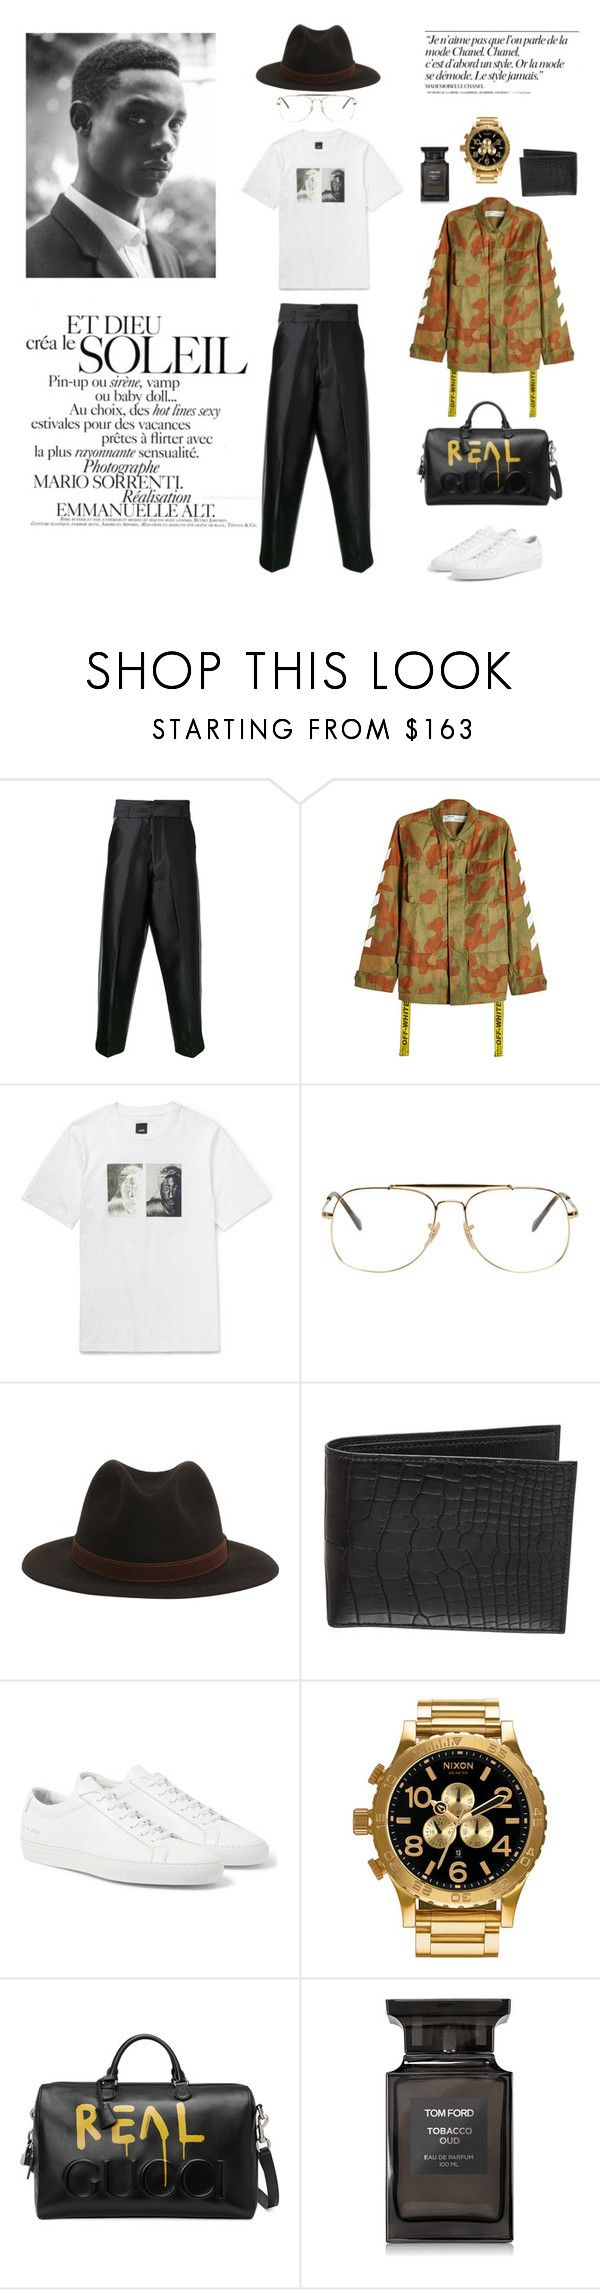 """Downtown"" by maariavld on Polyvore featuring Private Policy, Off-White, Ray-Ban, Borsalino, Hermès, Nixon, Gucci, Tom Ford, Chanel and men's fashion"